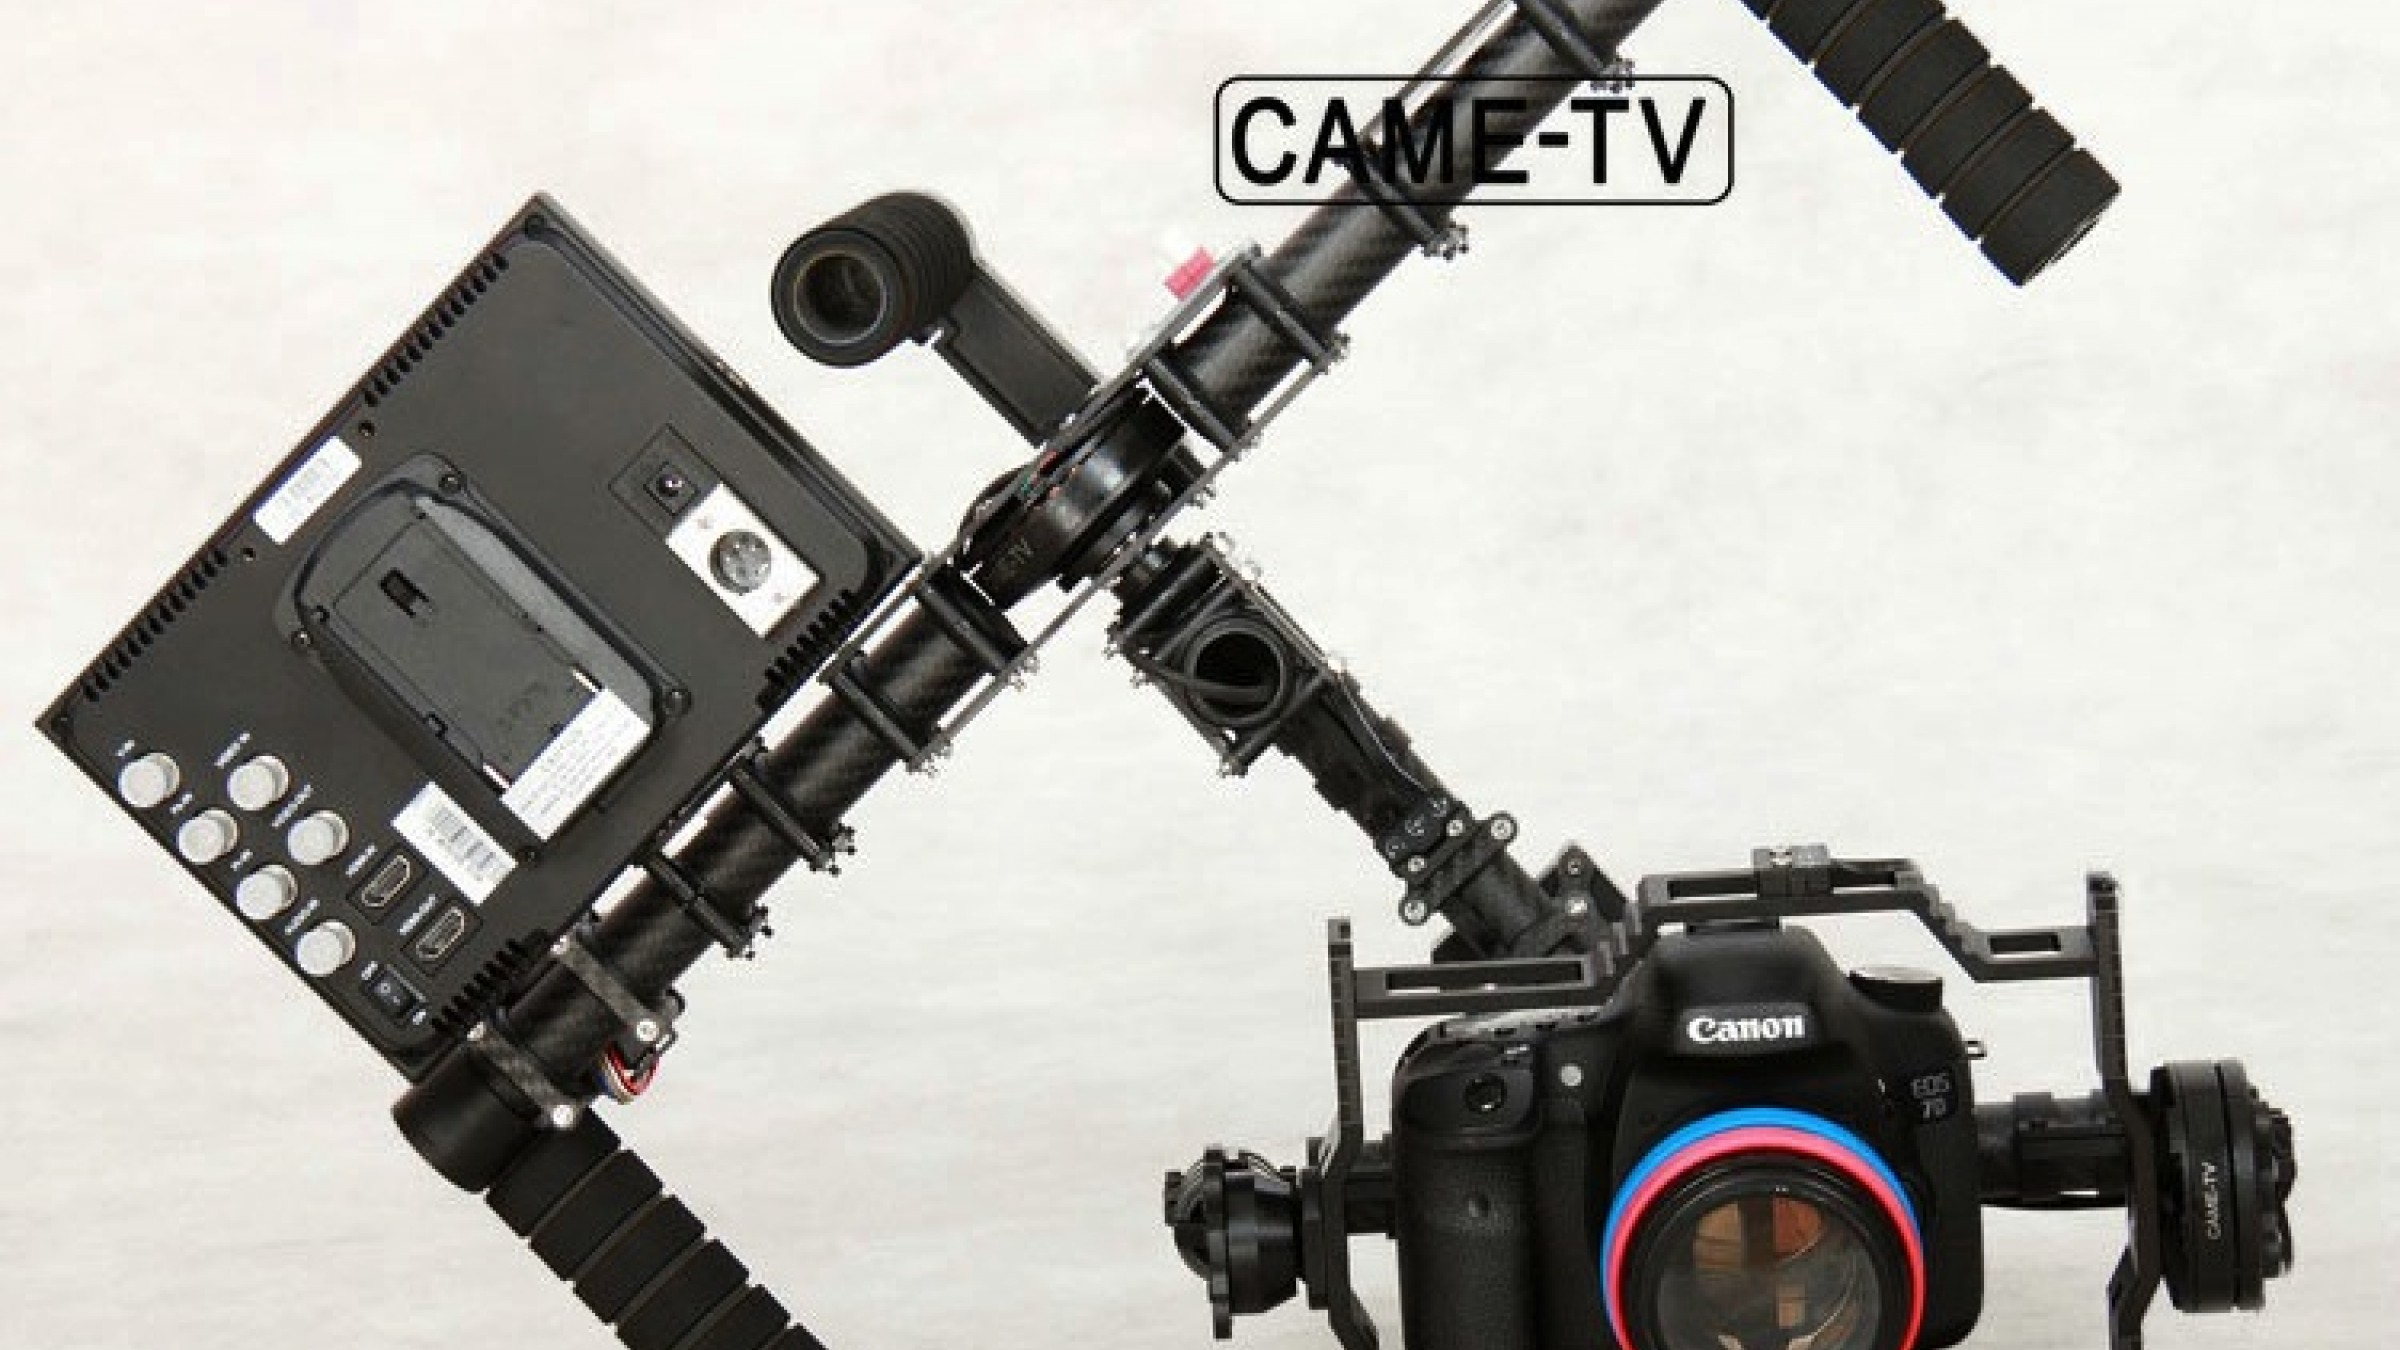 The Versatile CameTV 7800 Gimbal Stabilizer Just Got a Little More Affordable